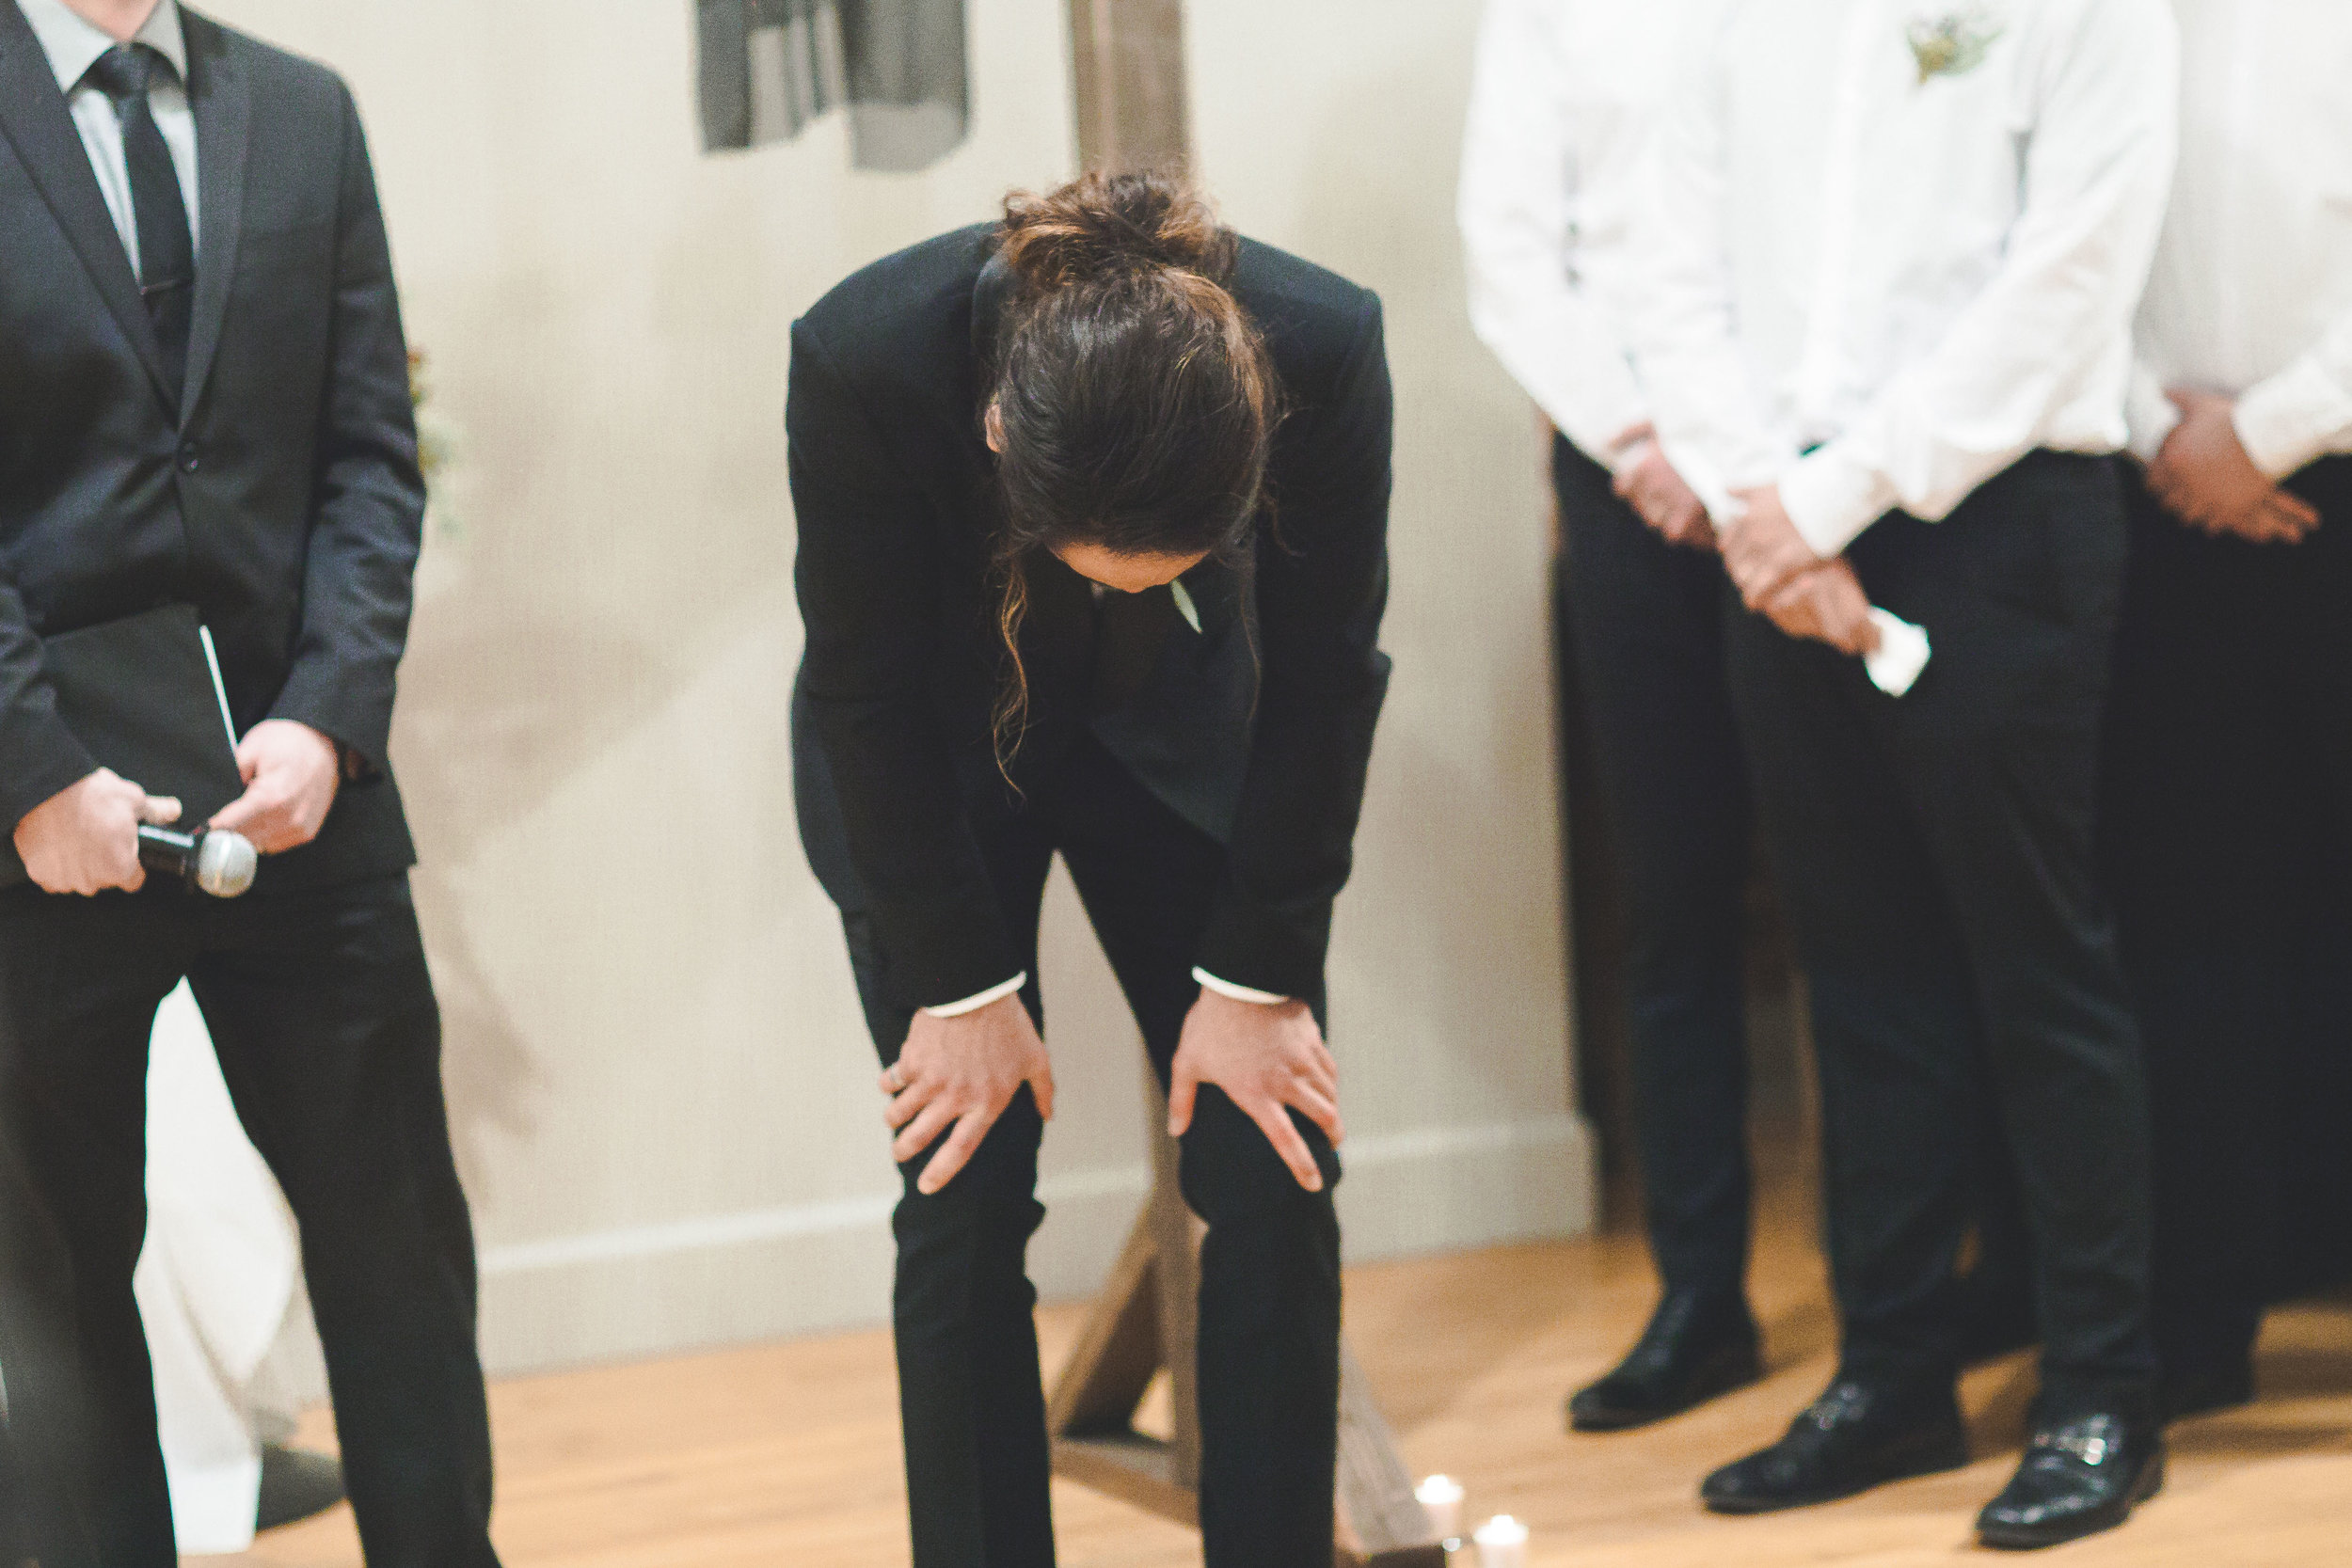 groom reacts to bride walking down aisle spokane wedding